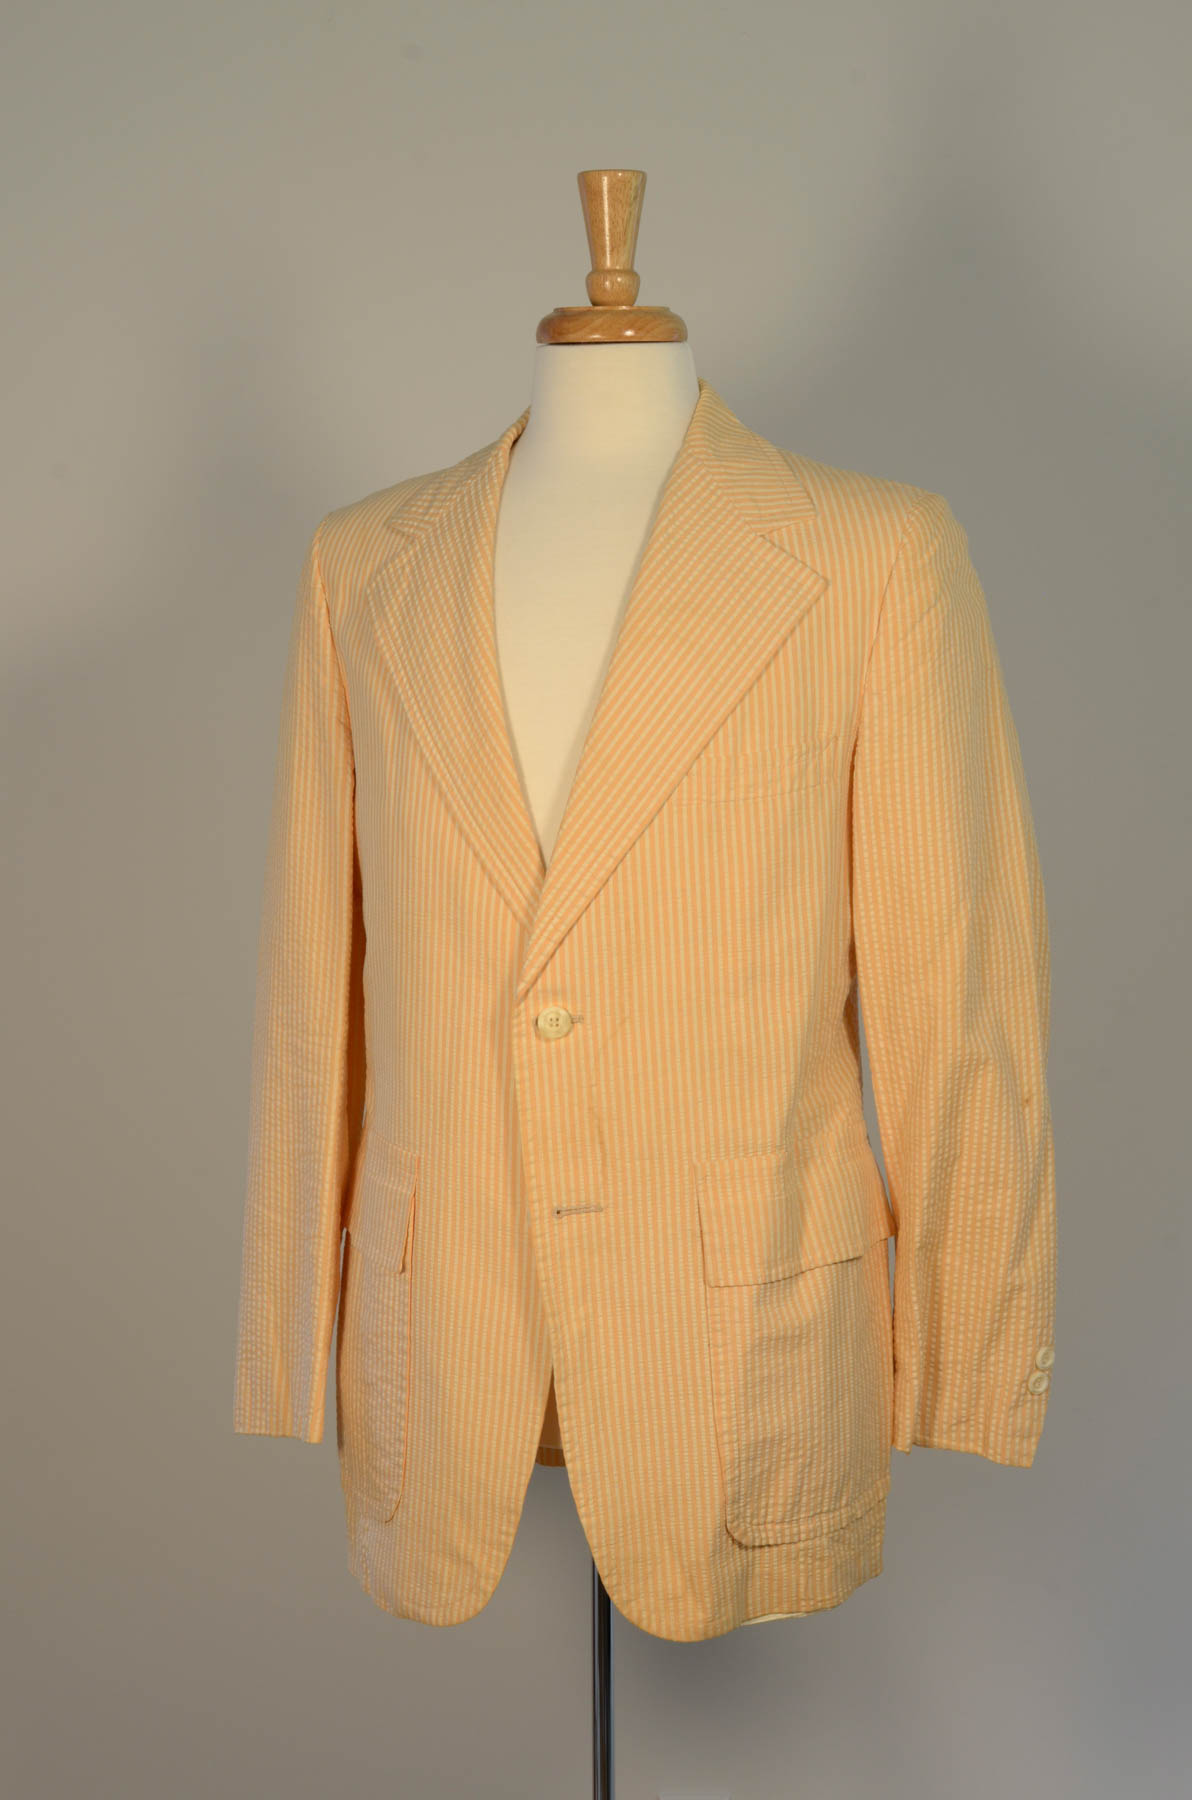 Reunion Jacket 1950 Variation 1 Front